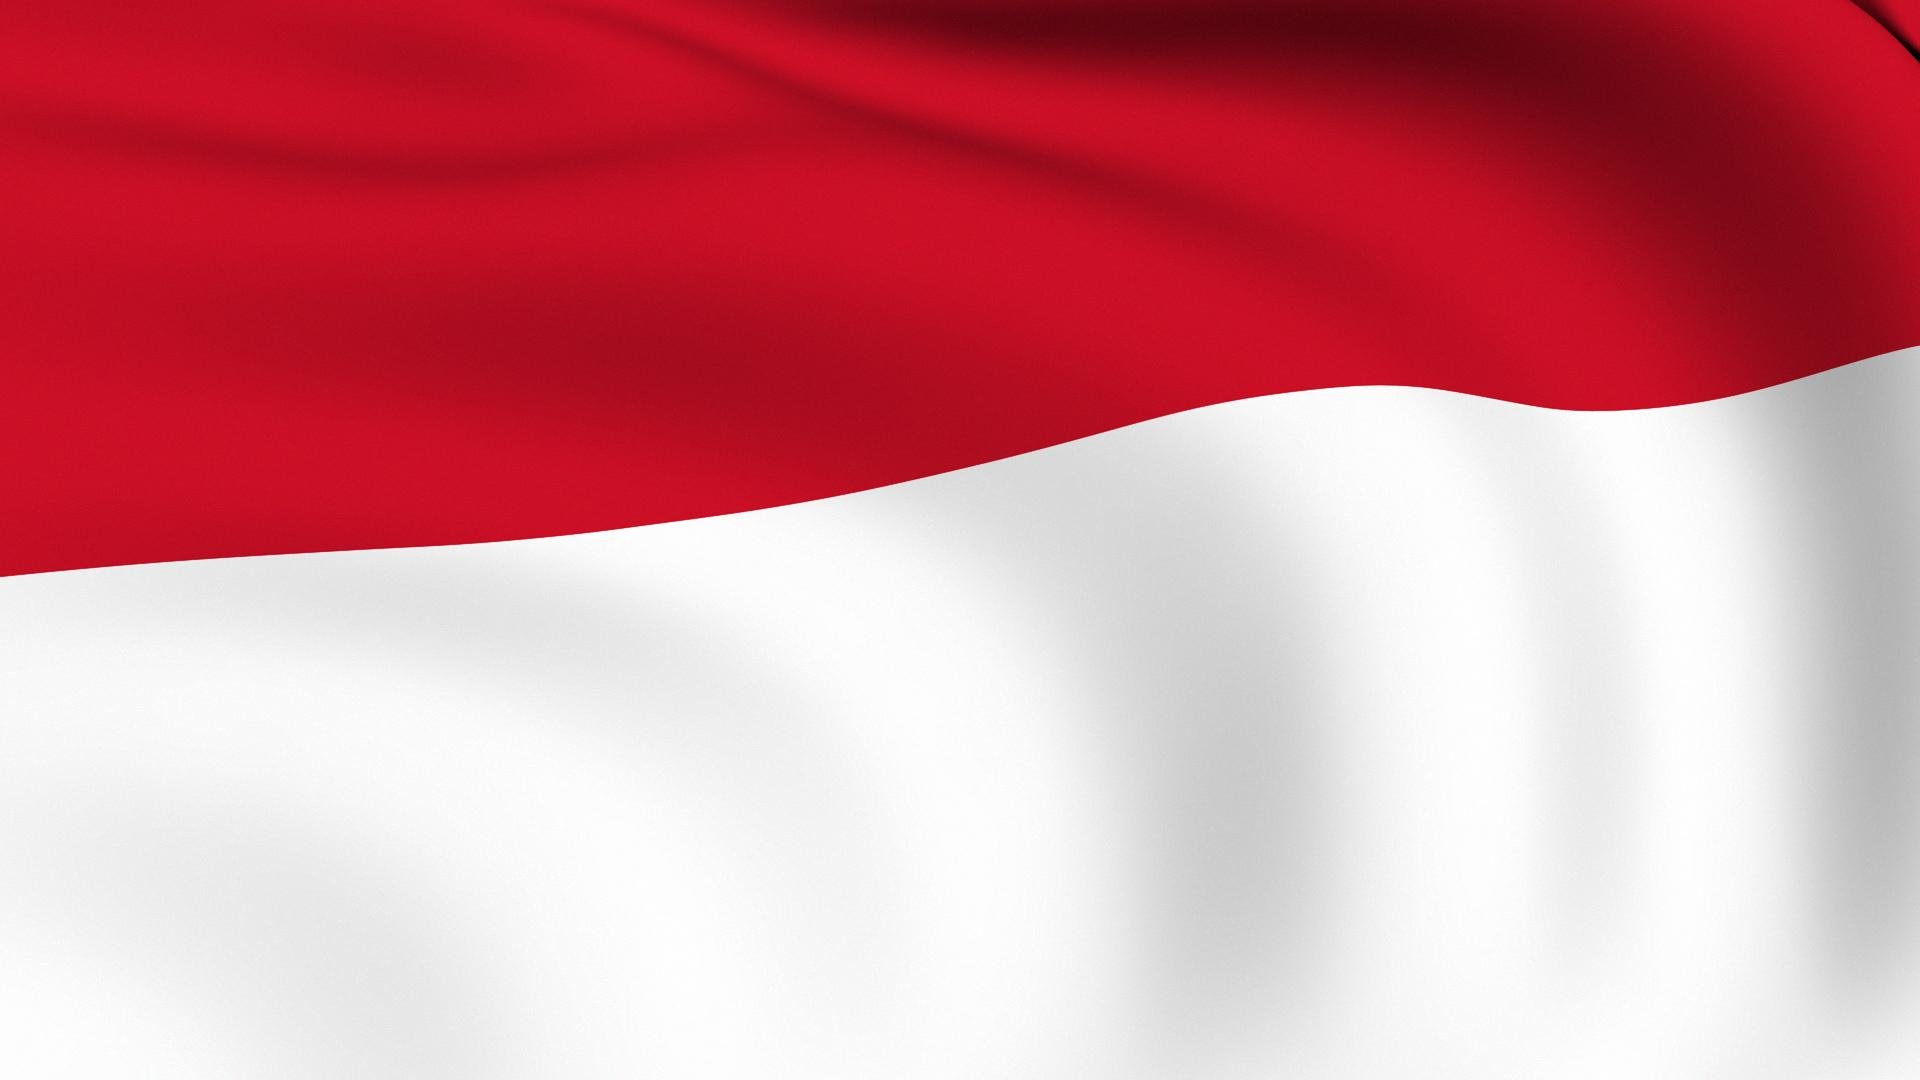 indonesian flag indonesia flags wallpaper 1920x1080 515143